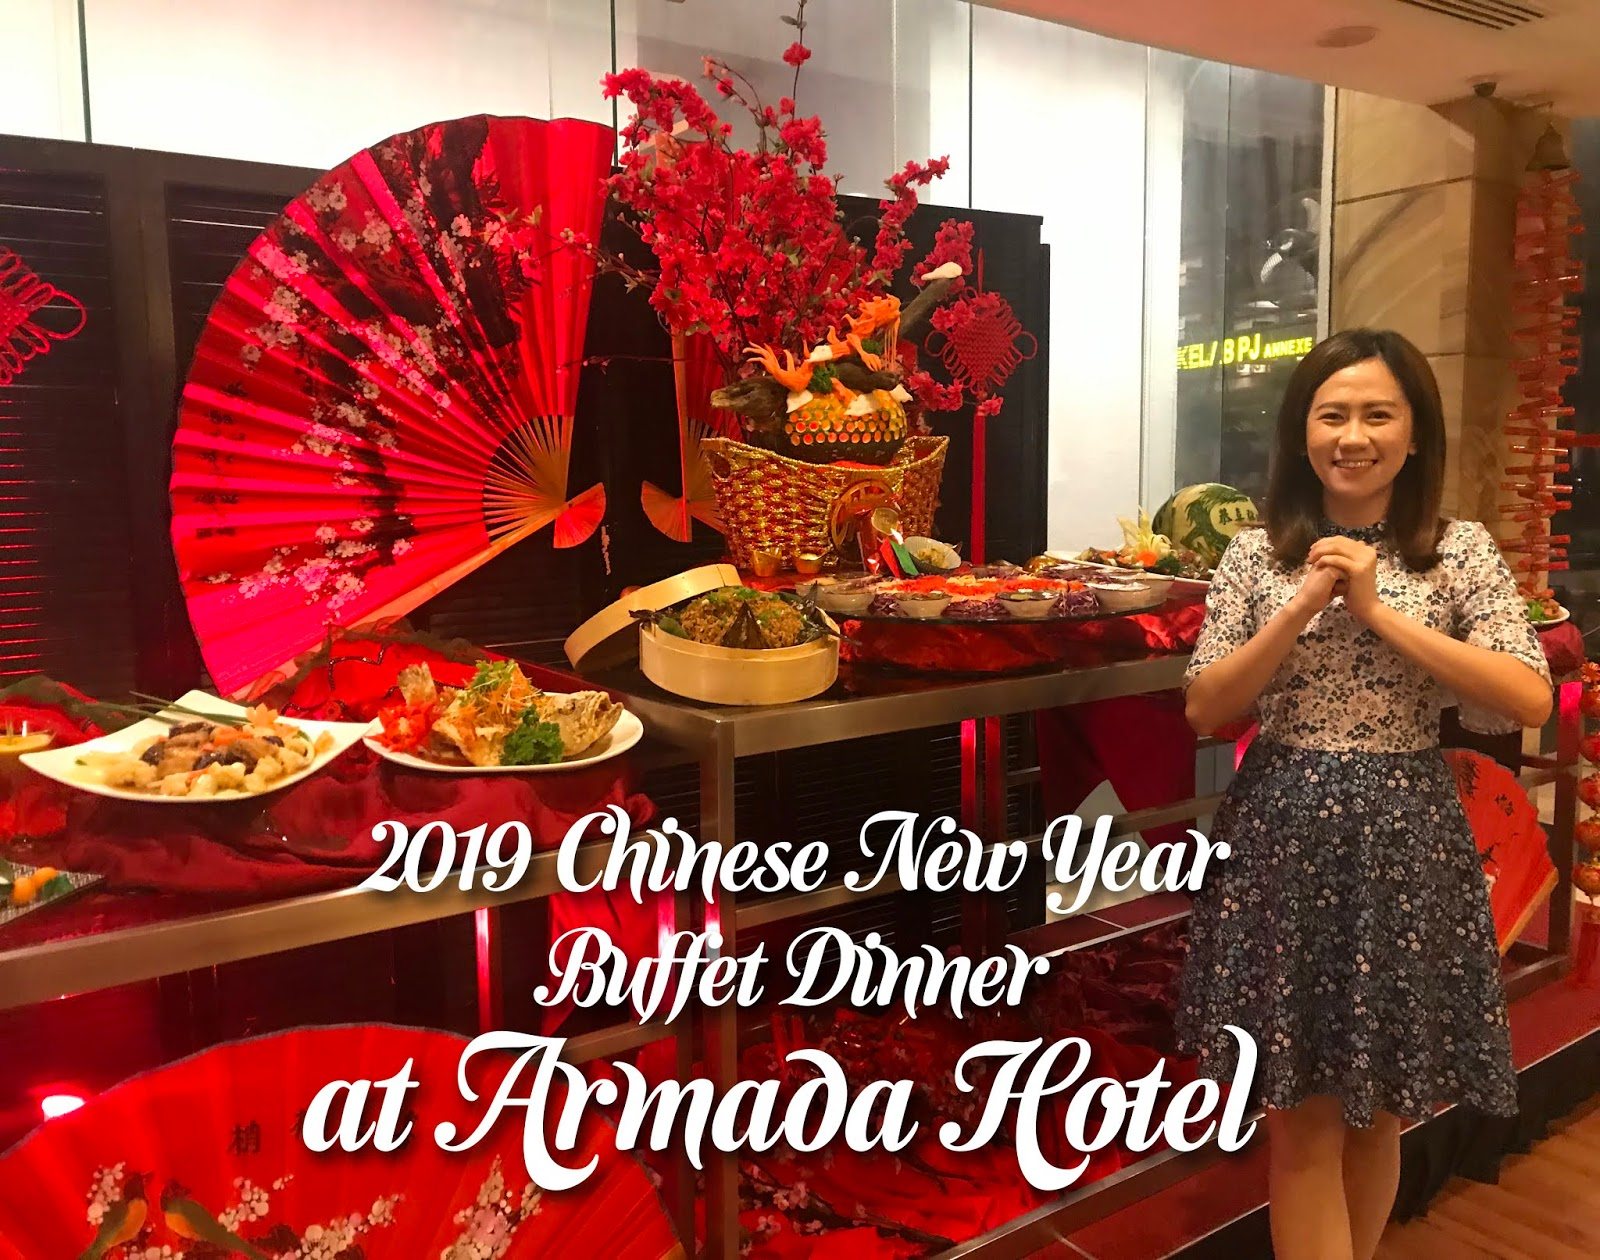 [Buffet Review] 2019 Chinese New Year Buffet Dinner @ Utara Coffee House, Armada Hotel Petaling Jaya